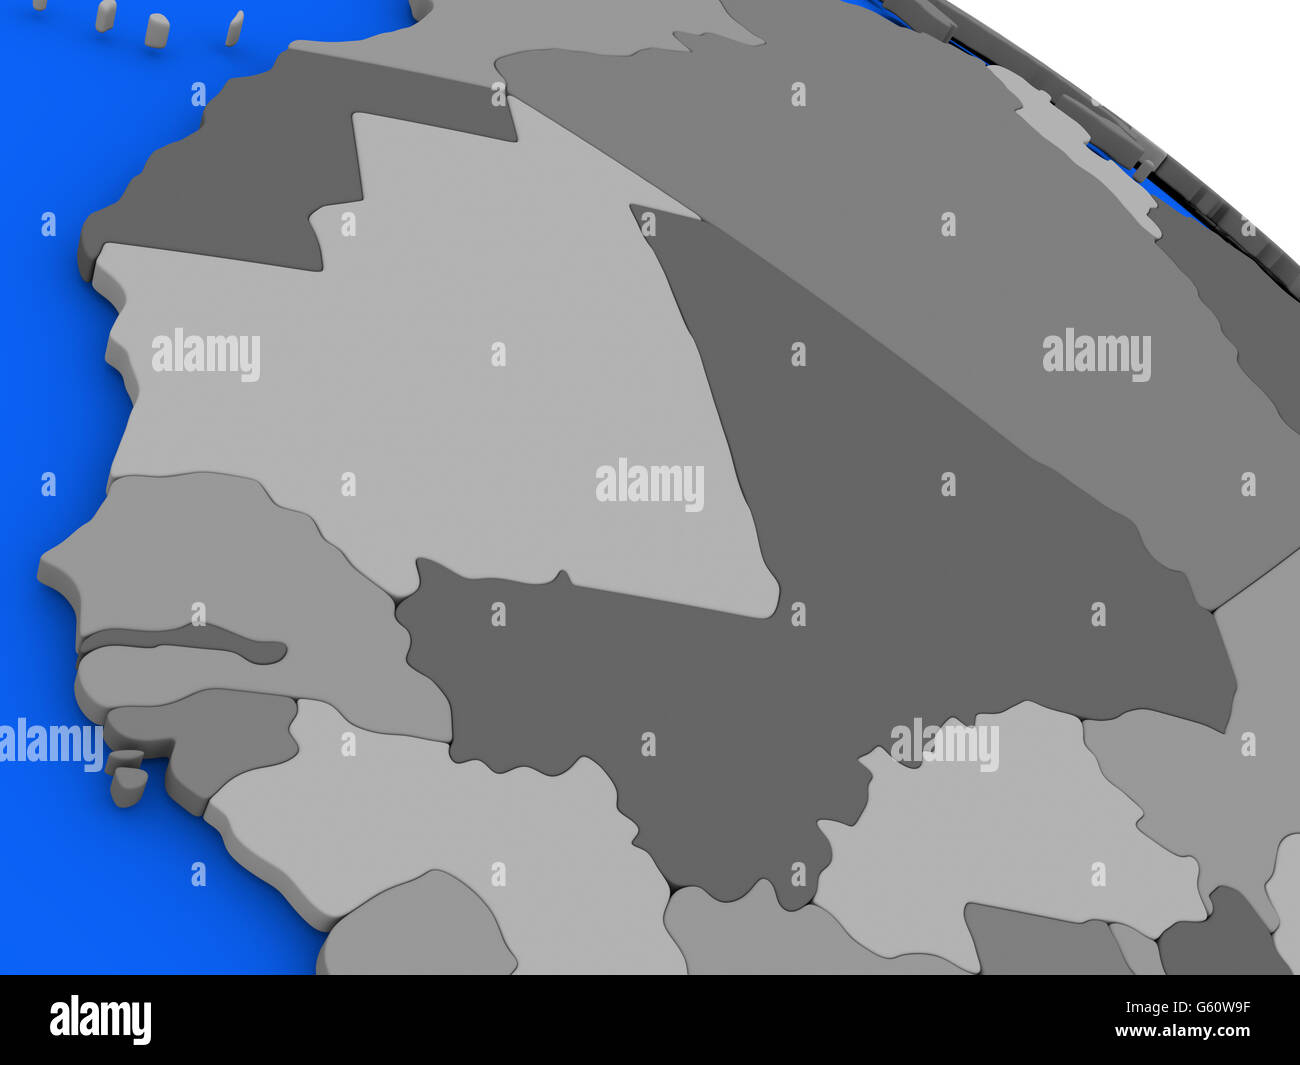 Map of mali and senegal on 3d model of earth with countries in stock map of mali and senegal on 3d model of earth with countries in various shades of grey and blue oceans 3d illustration gumiabroncs Choice Image